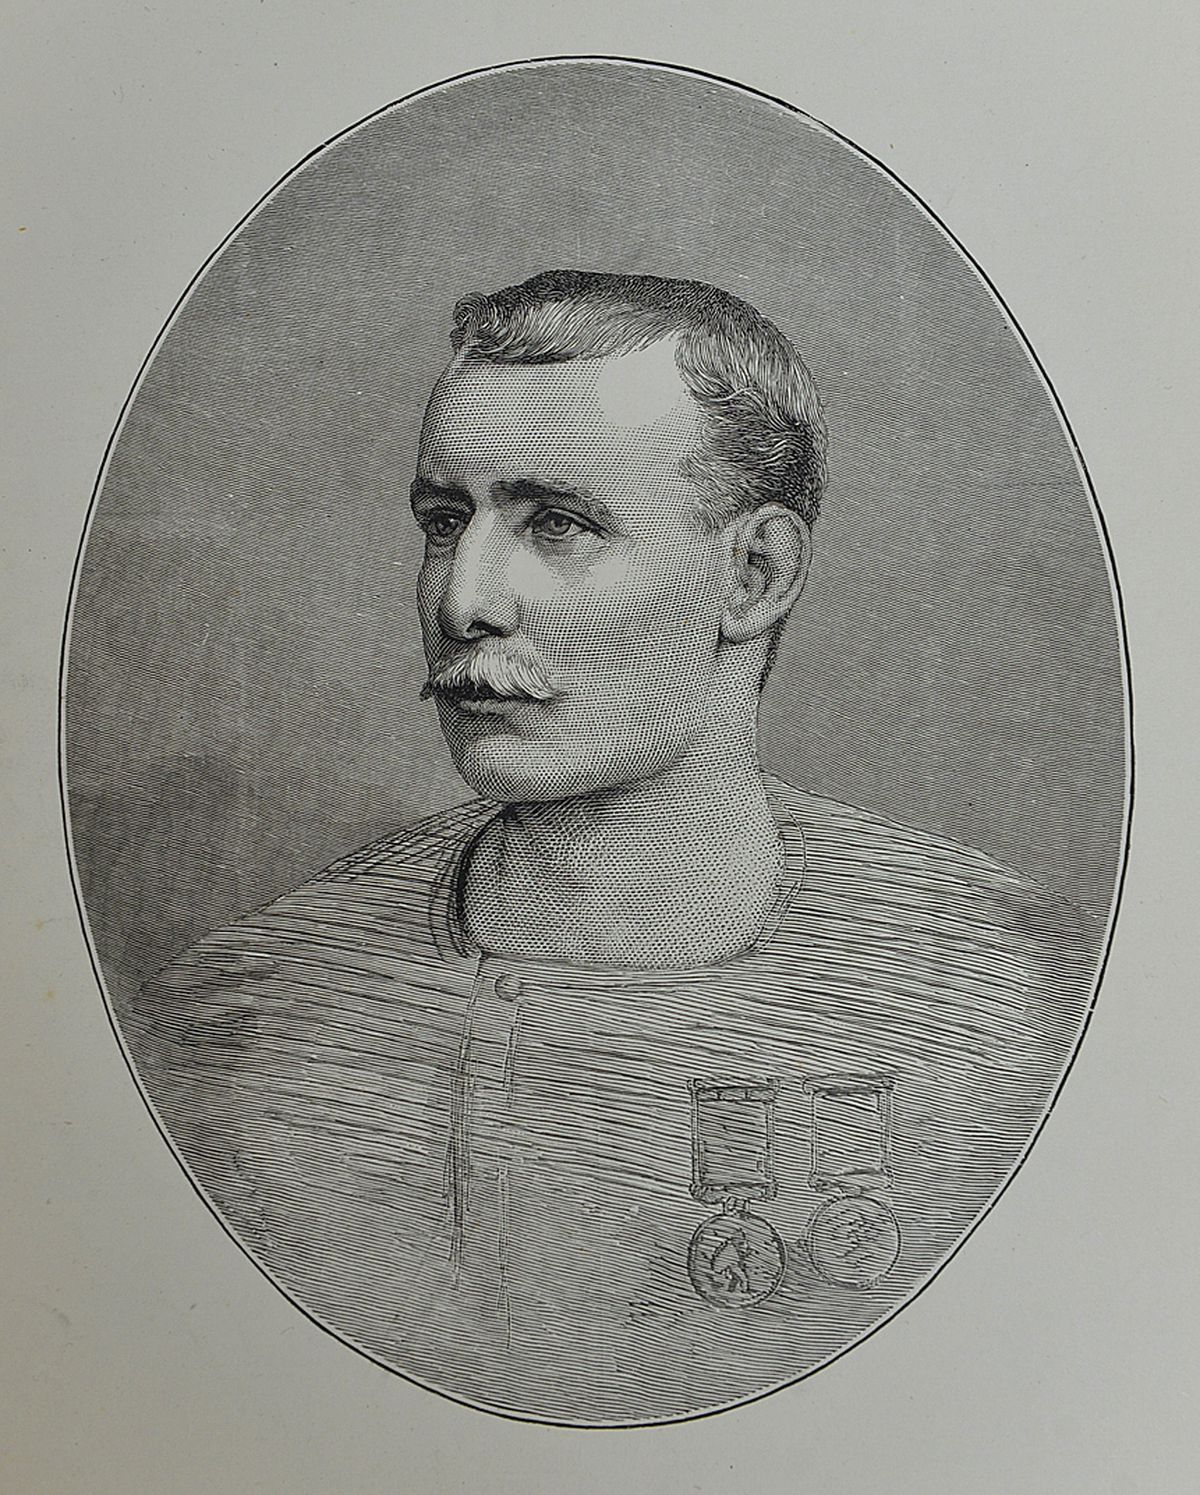 The swimming pool would be created in time to mark the 150th anniversary of Captain Webb swimming the channel